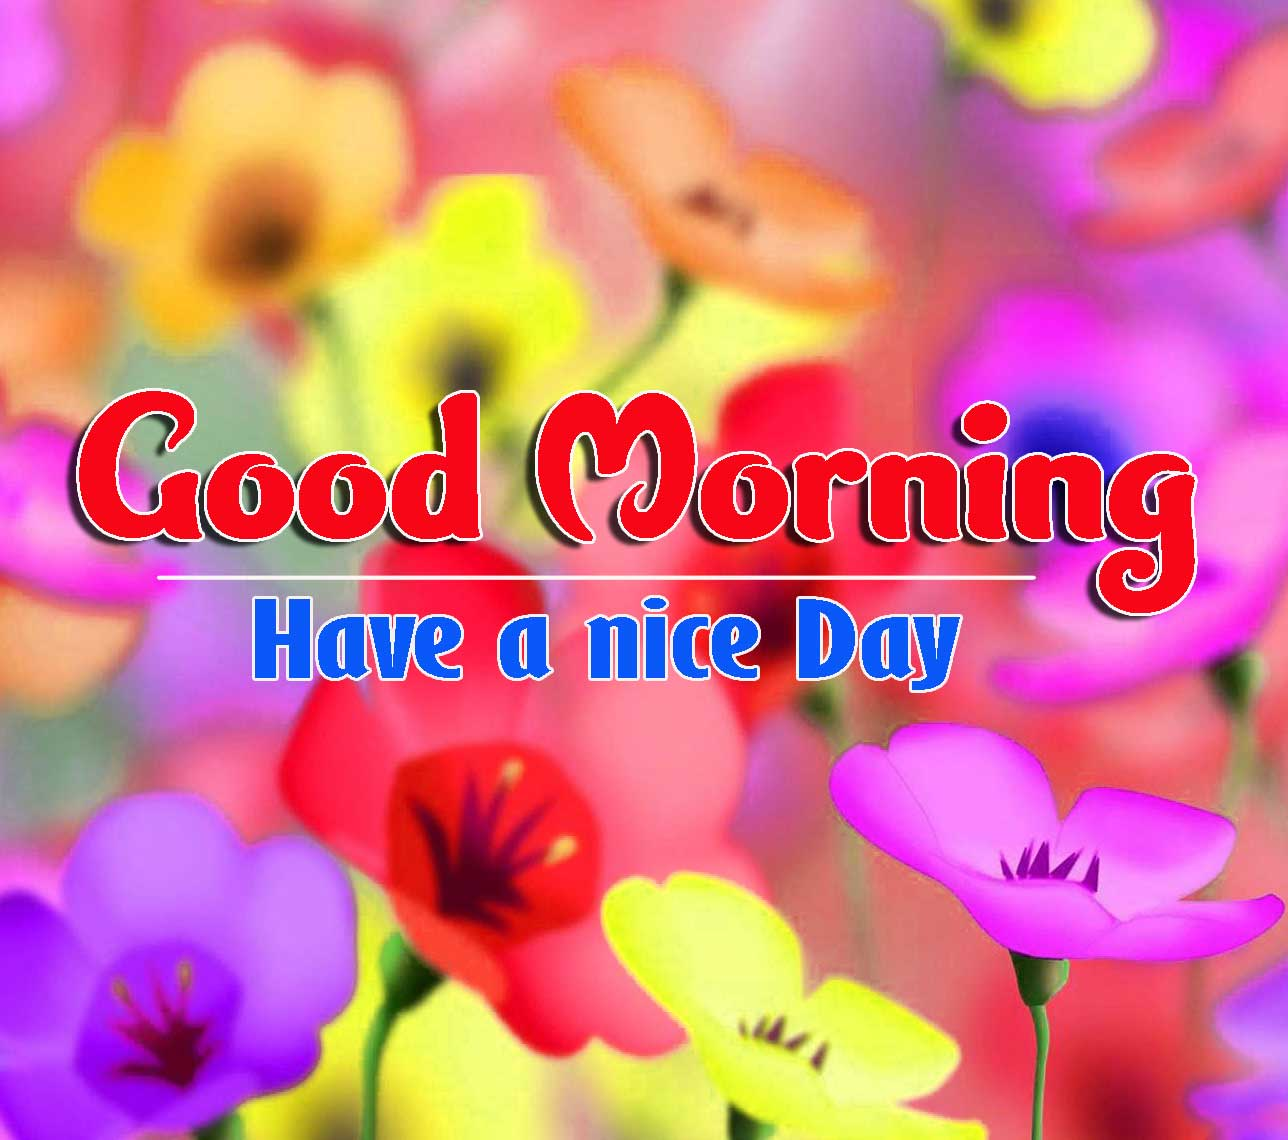 Good Morning Images HD 27